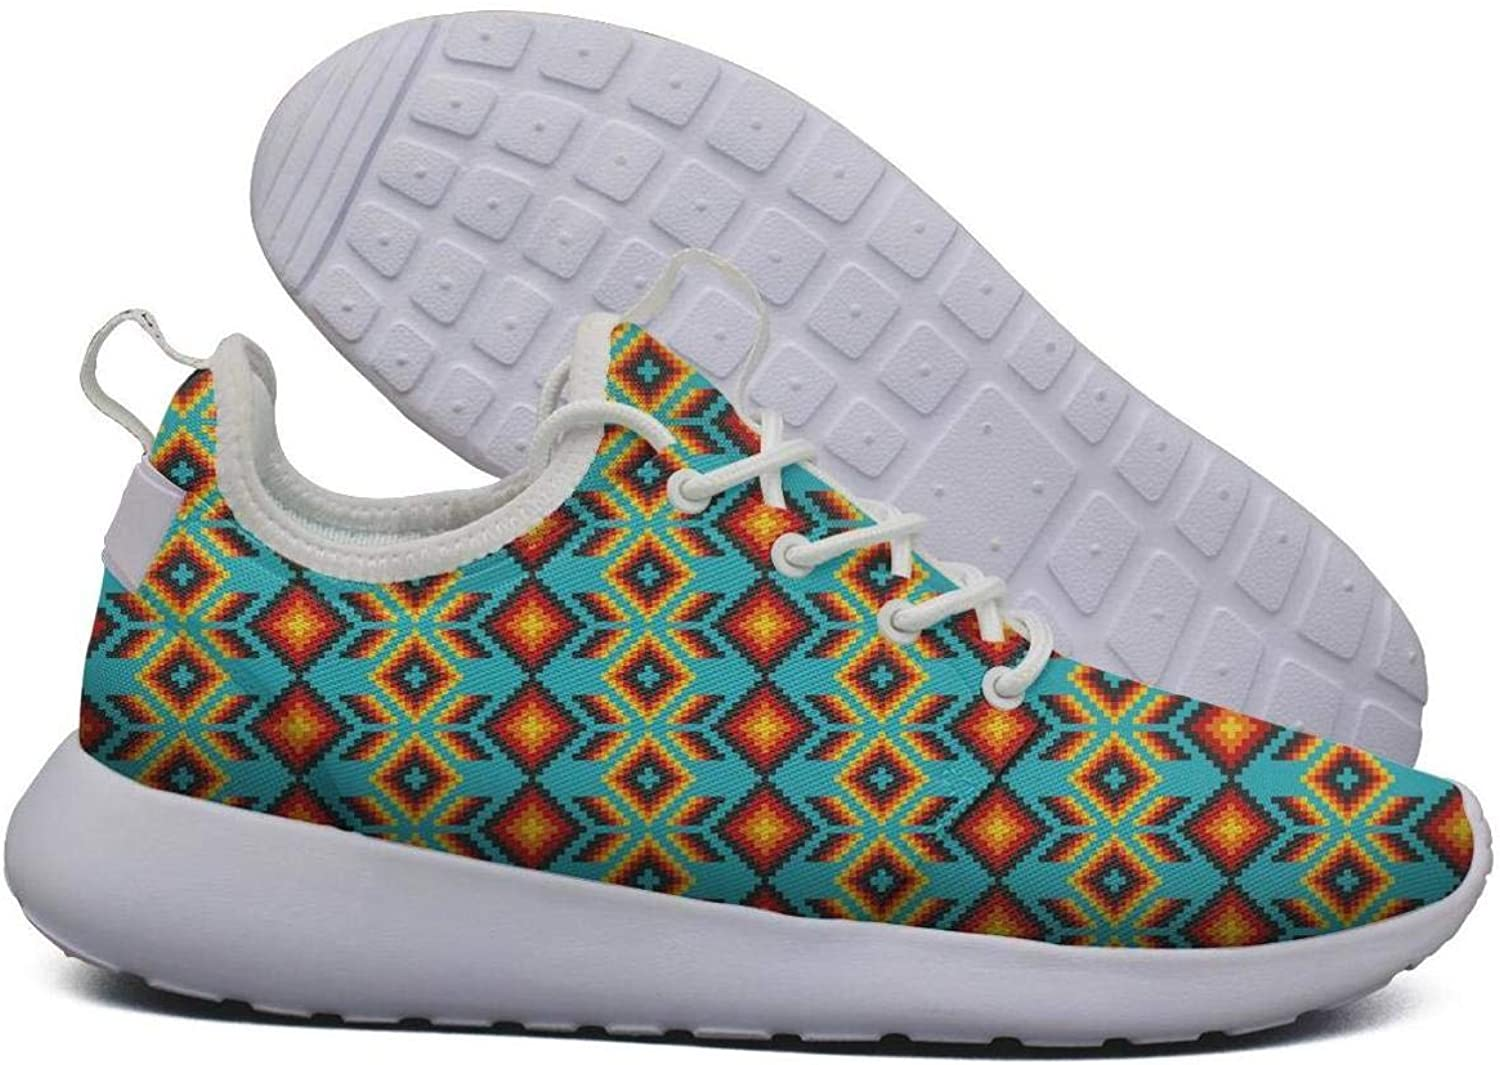 Unjdahsdd Mexican Huichol Geometric colorful Women's Hip hop Sneakers Lightweight Breathabl Boat shoes